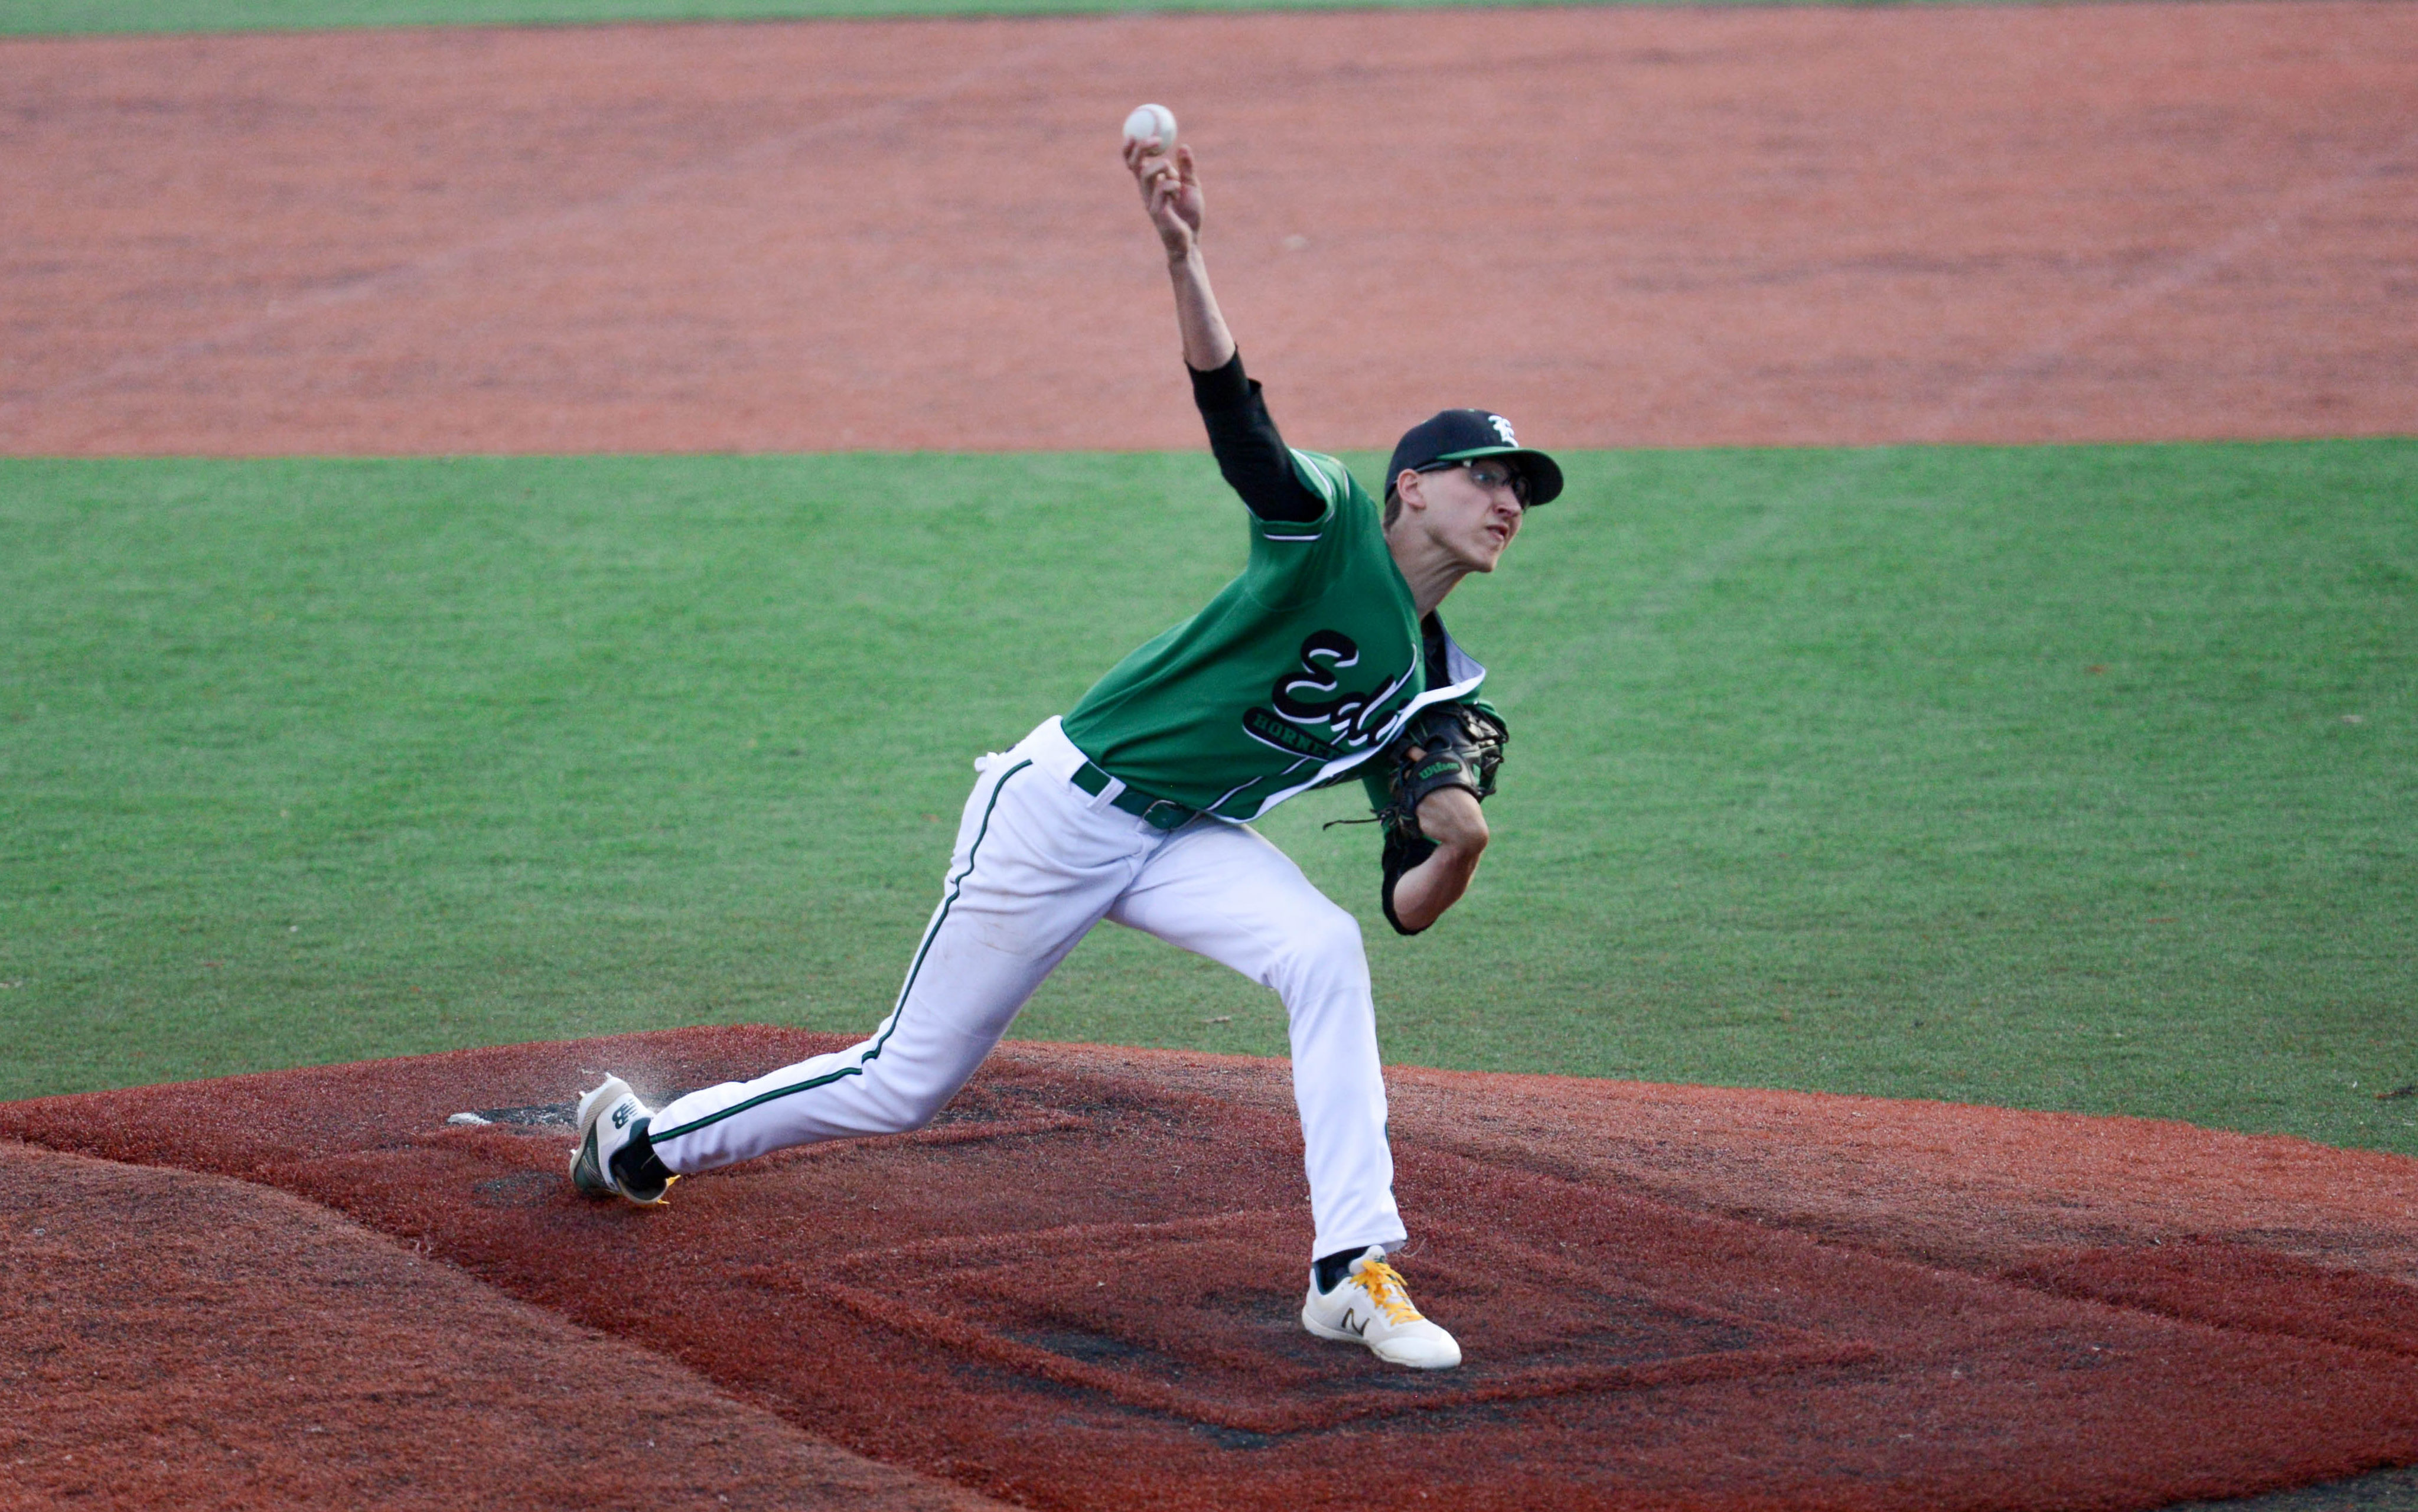 Edina pitcher Will Eckland (11) releases a pitch against Minnetonka. Eckland struck out 10 batters in 6 2/3 innings. The Hornets beat the Skippers 5-3. Photo by Carter Jones, SportsEngine